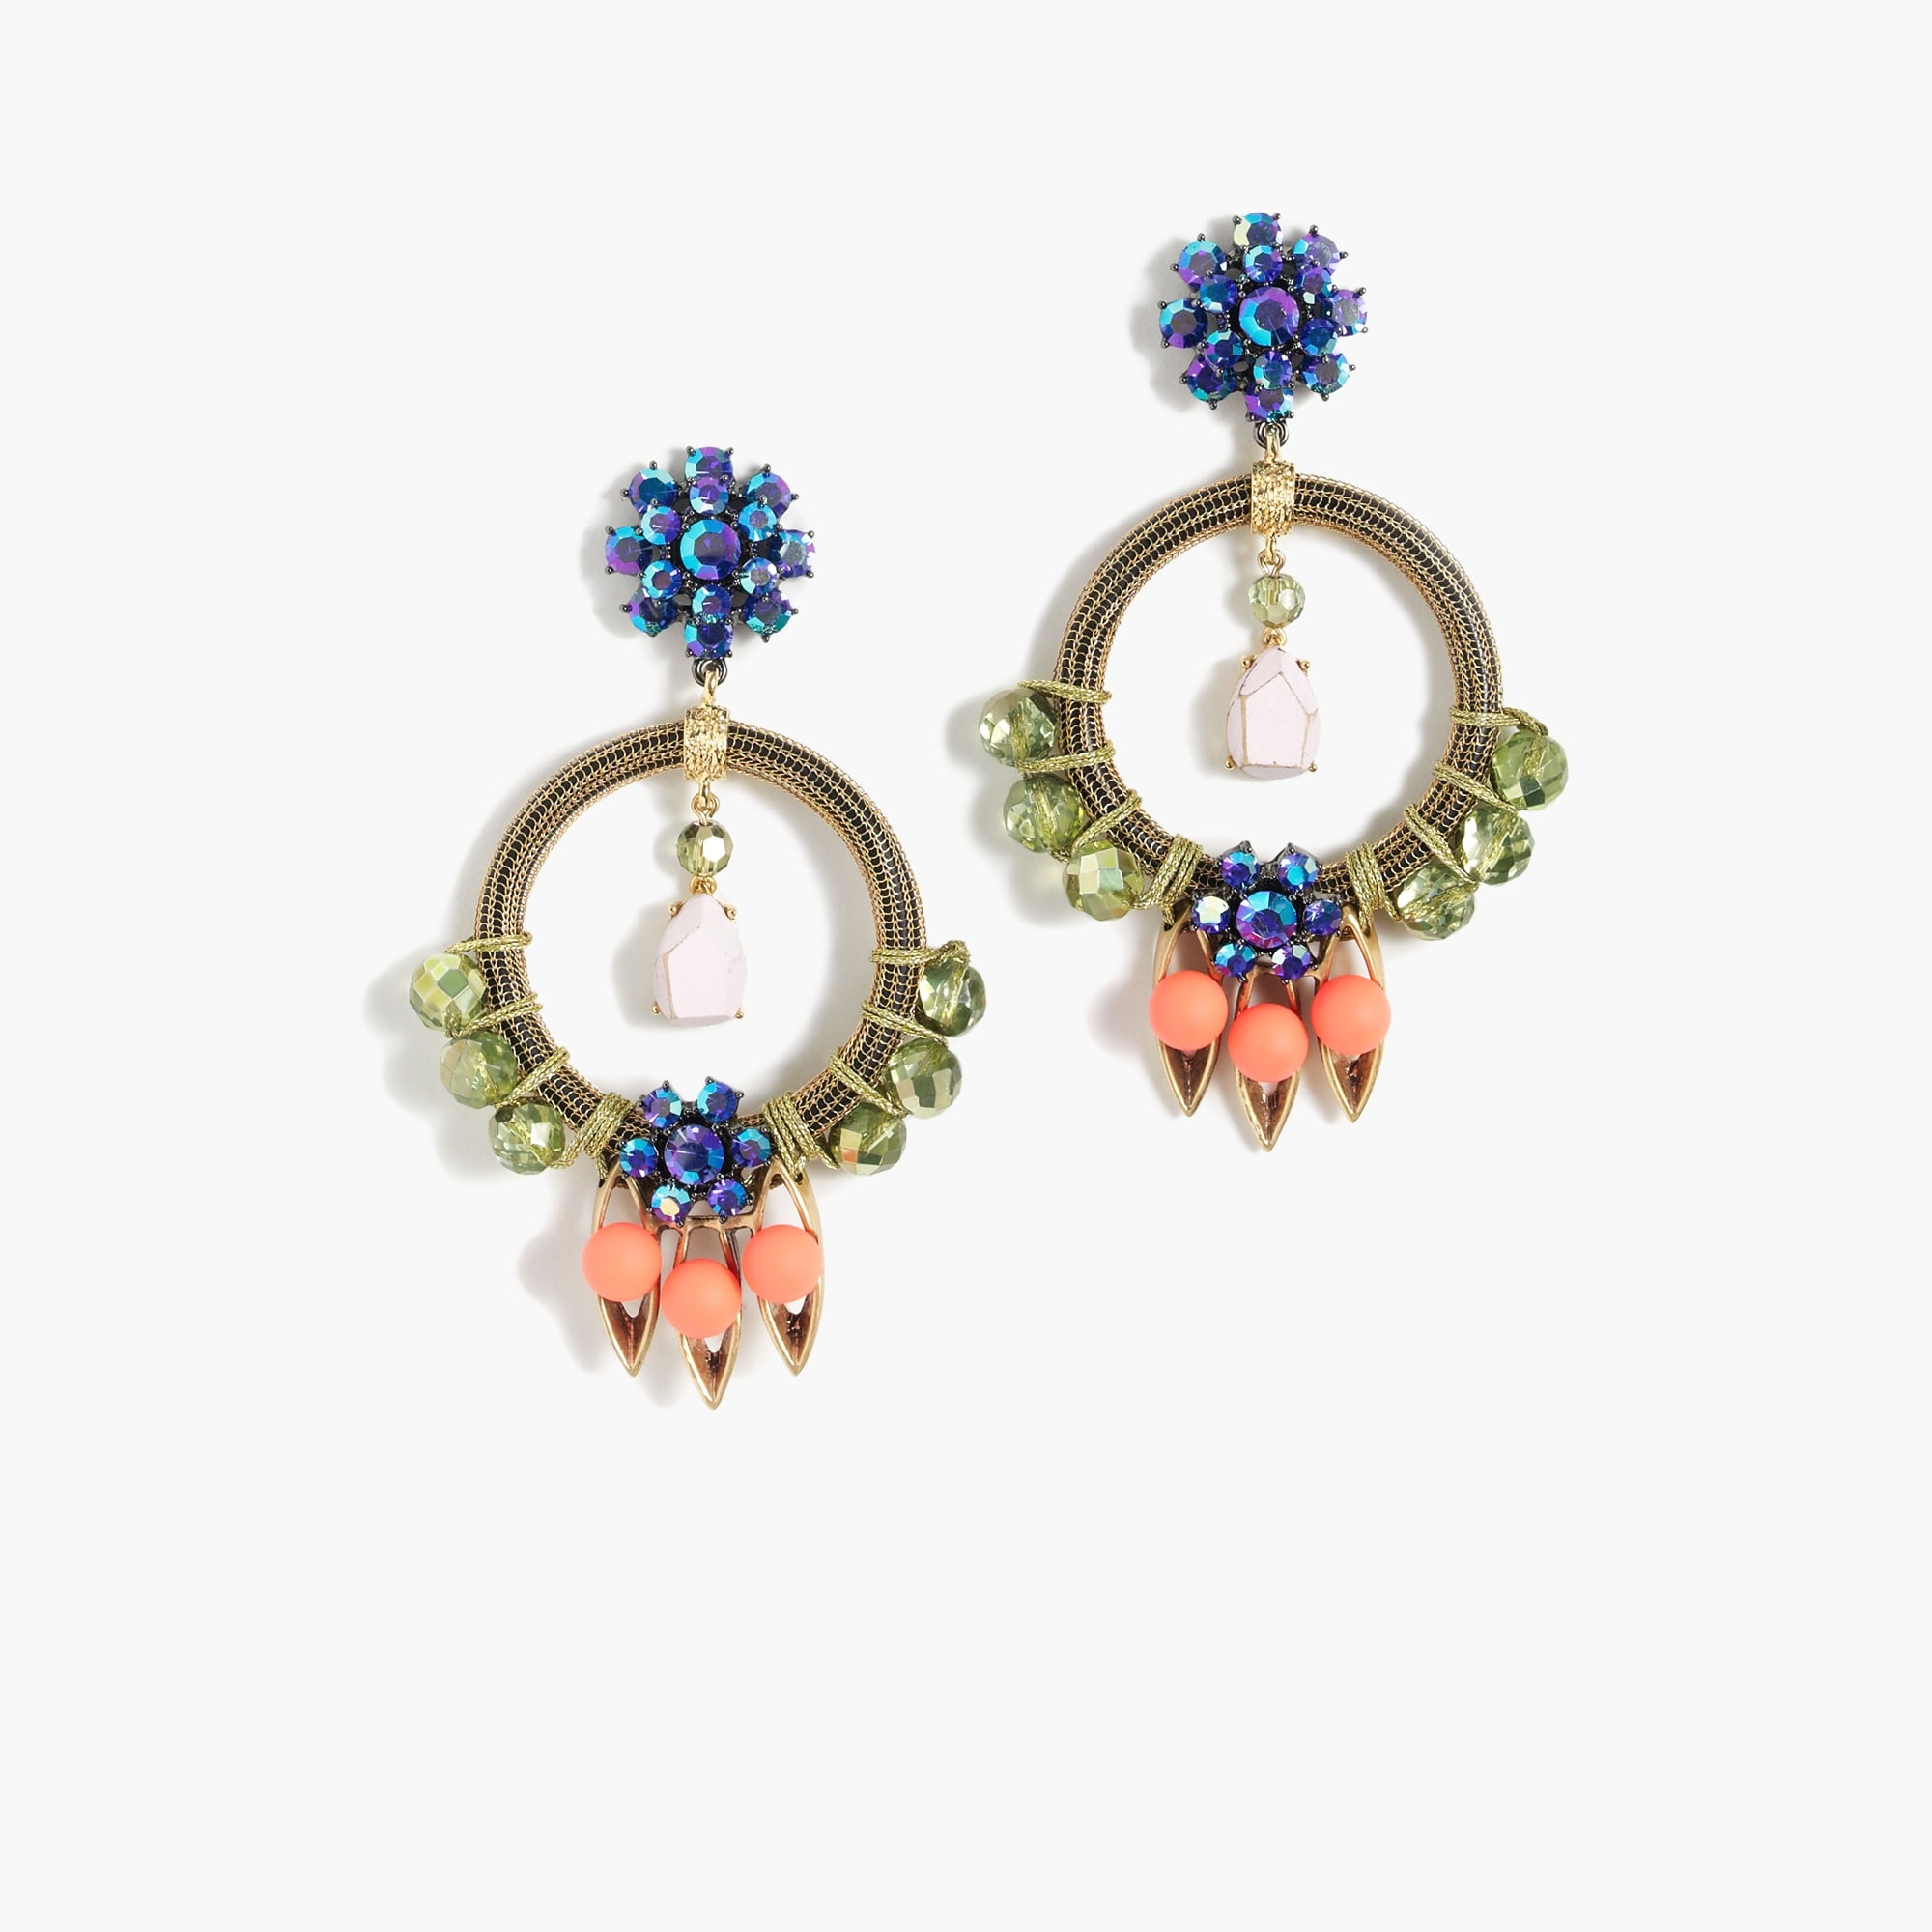 neon pop statement earrings : women earrings